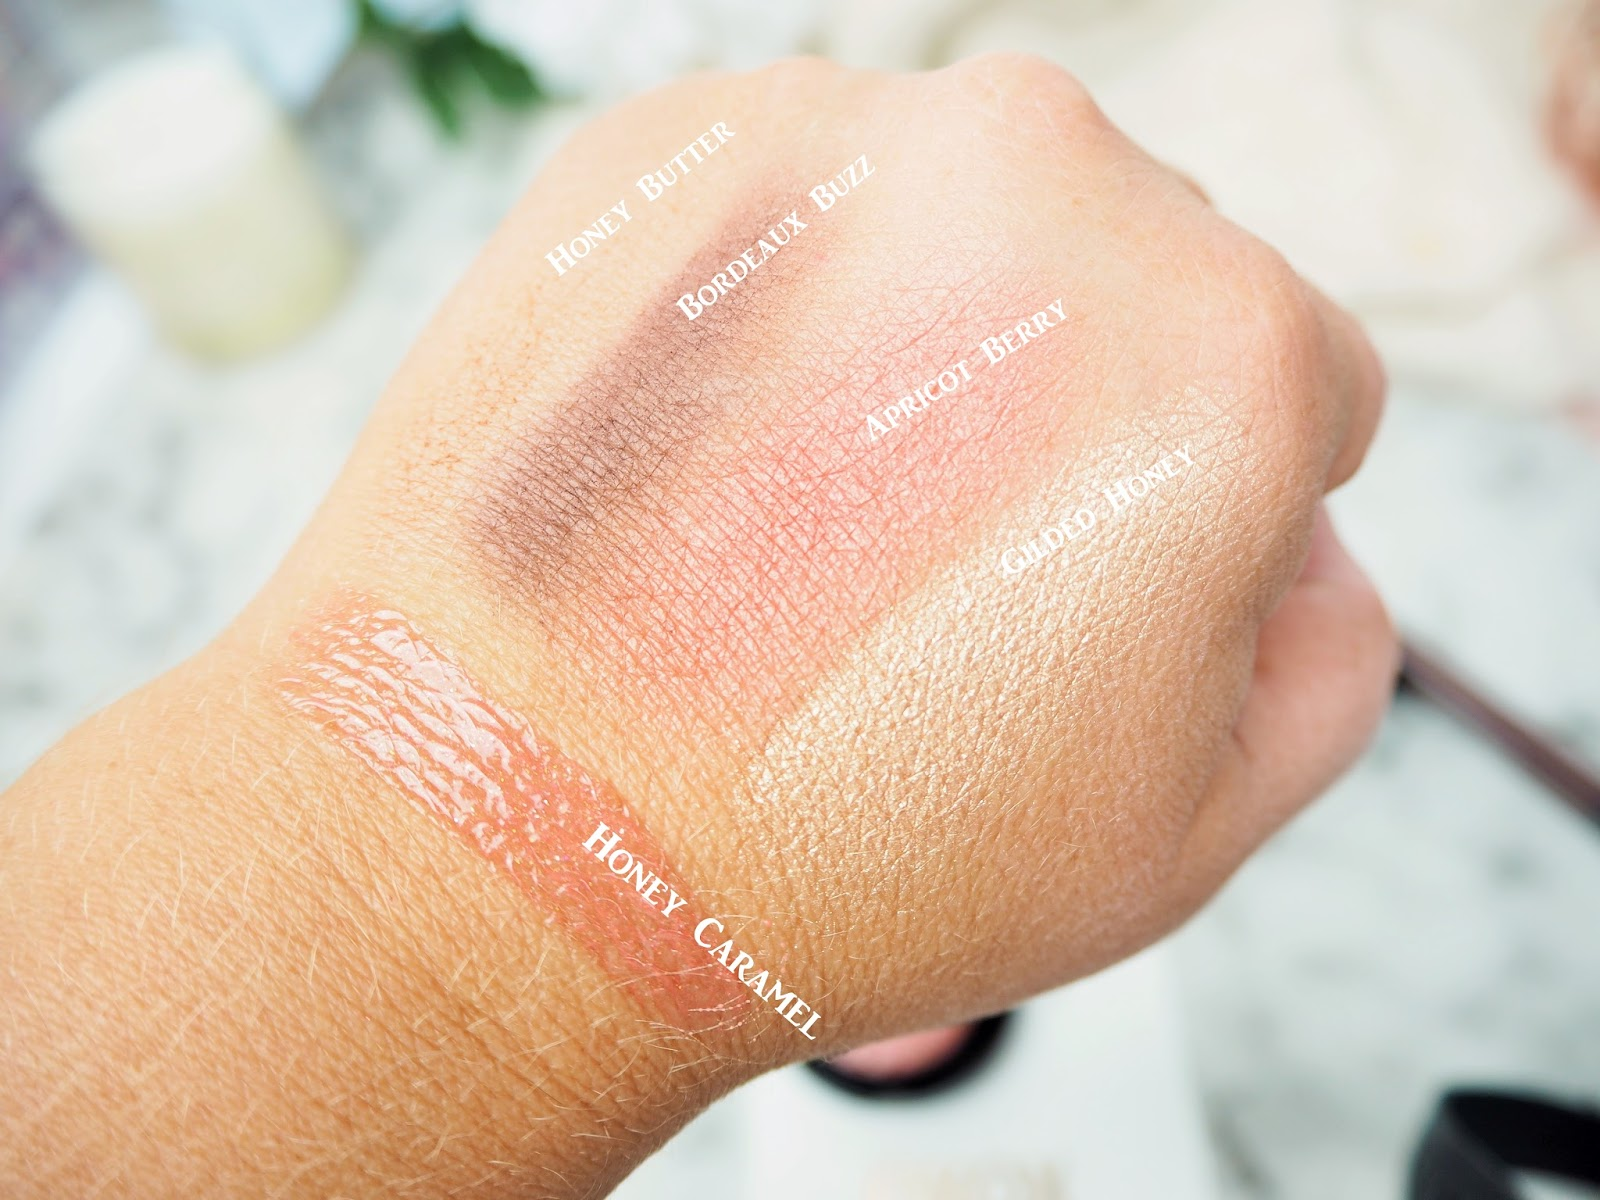 Laura Geller Swatches